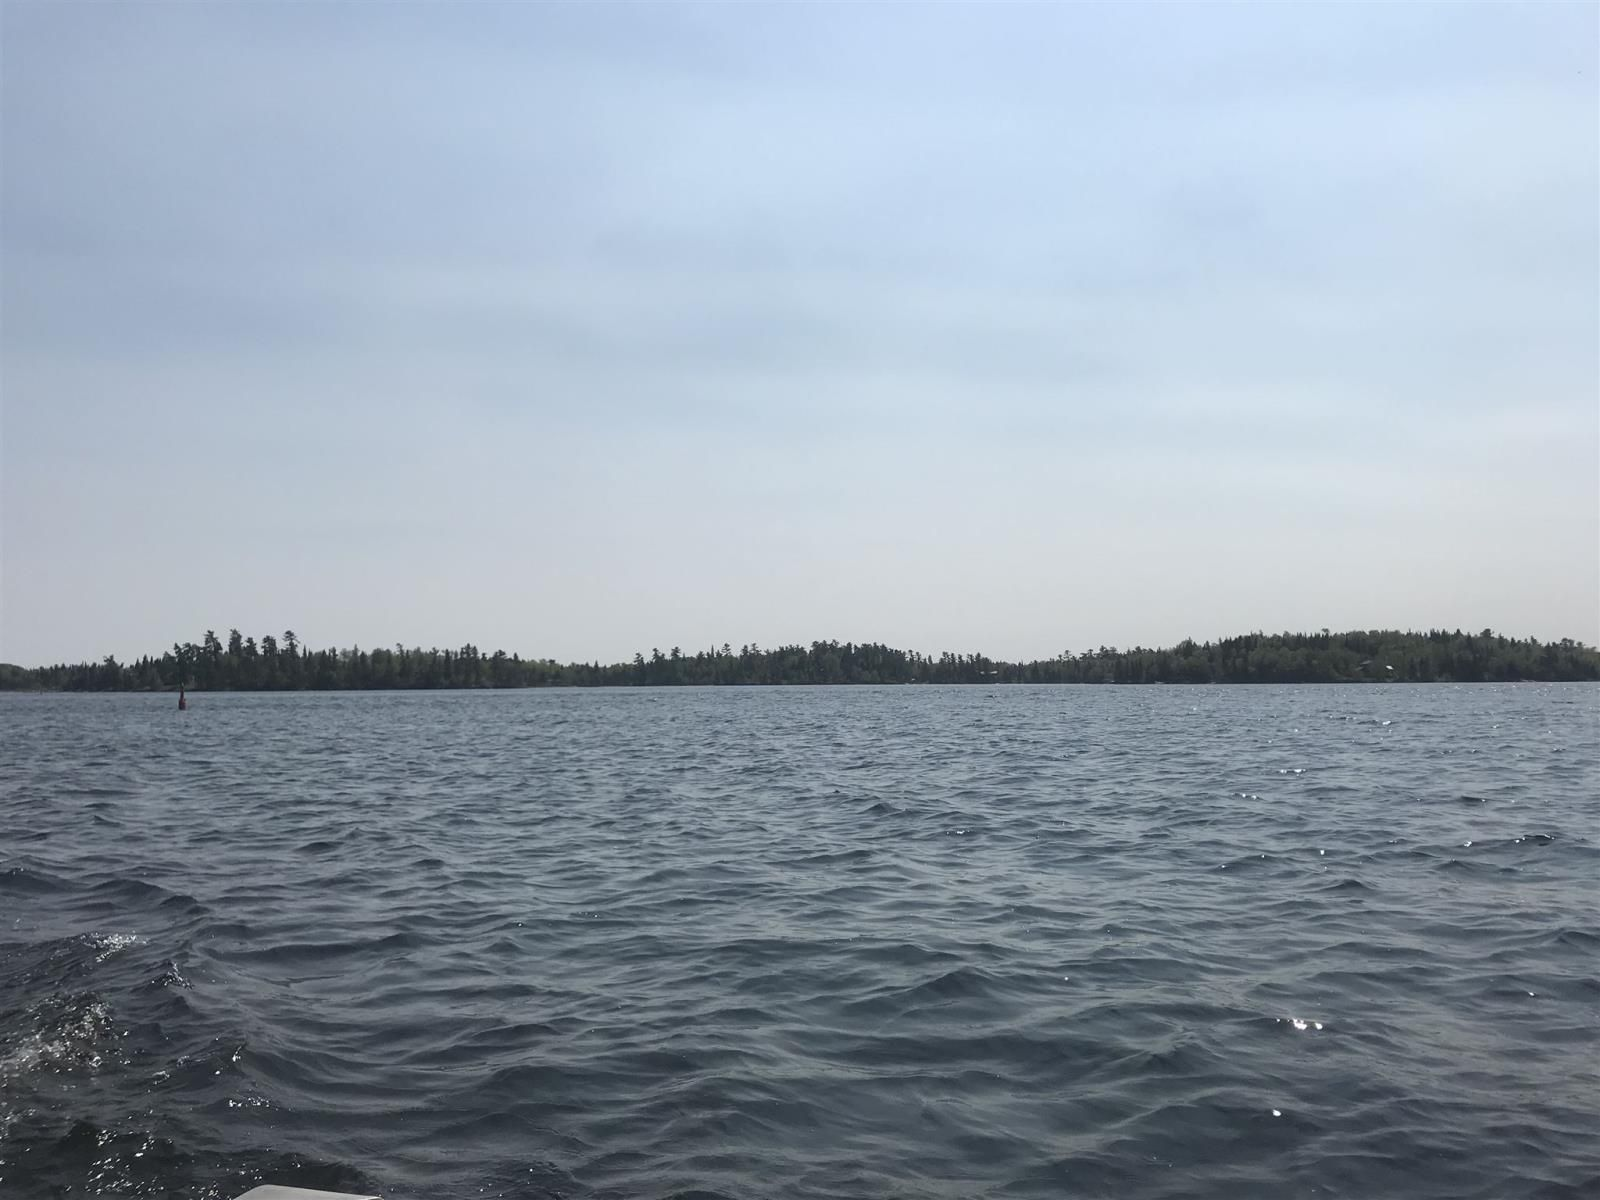 Main Photo: 4 Scott IS in Kenora: Vacant Land for sale : MLS®# TB191550